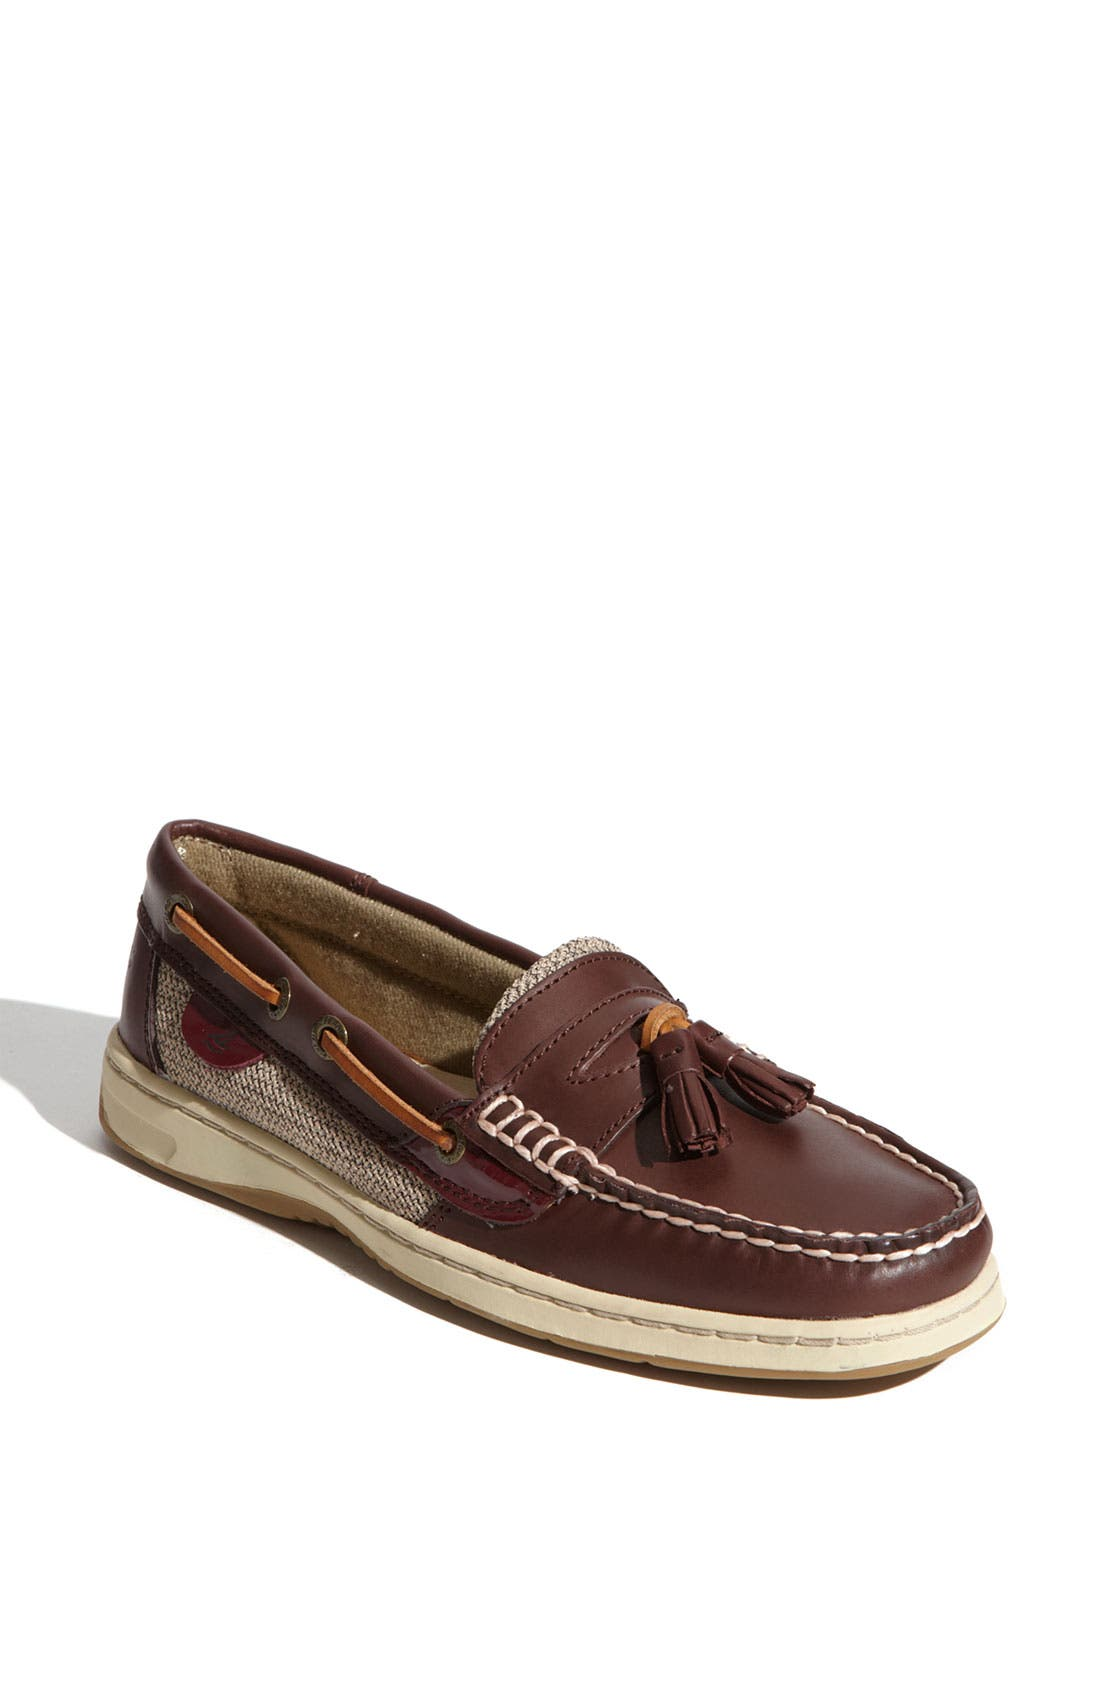 Alternate Image 1 Selected - Sperry Top-Sider® 'Tassel Fish' Flat